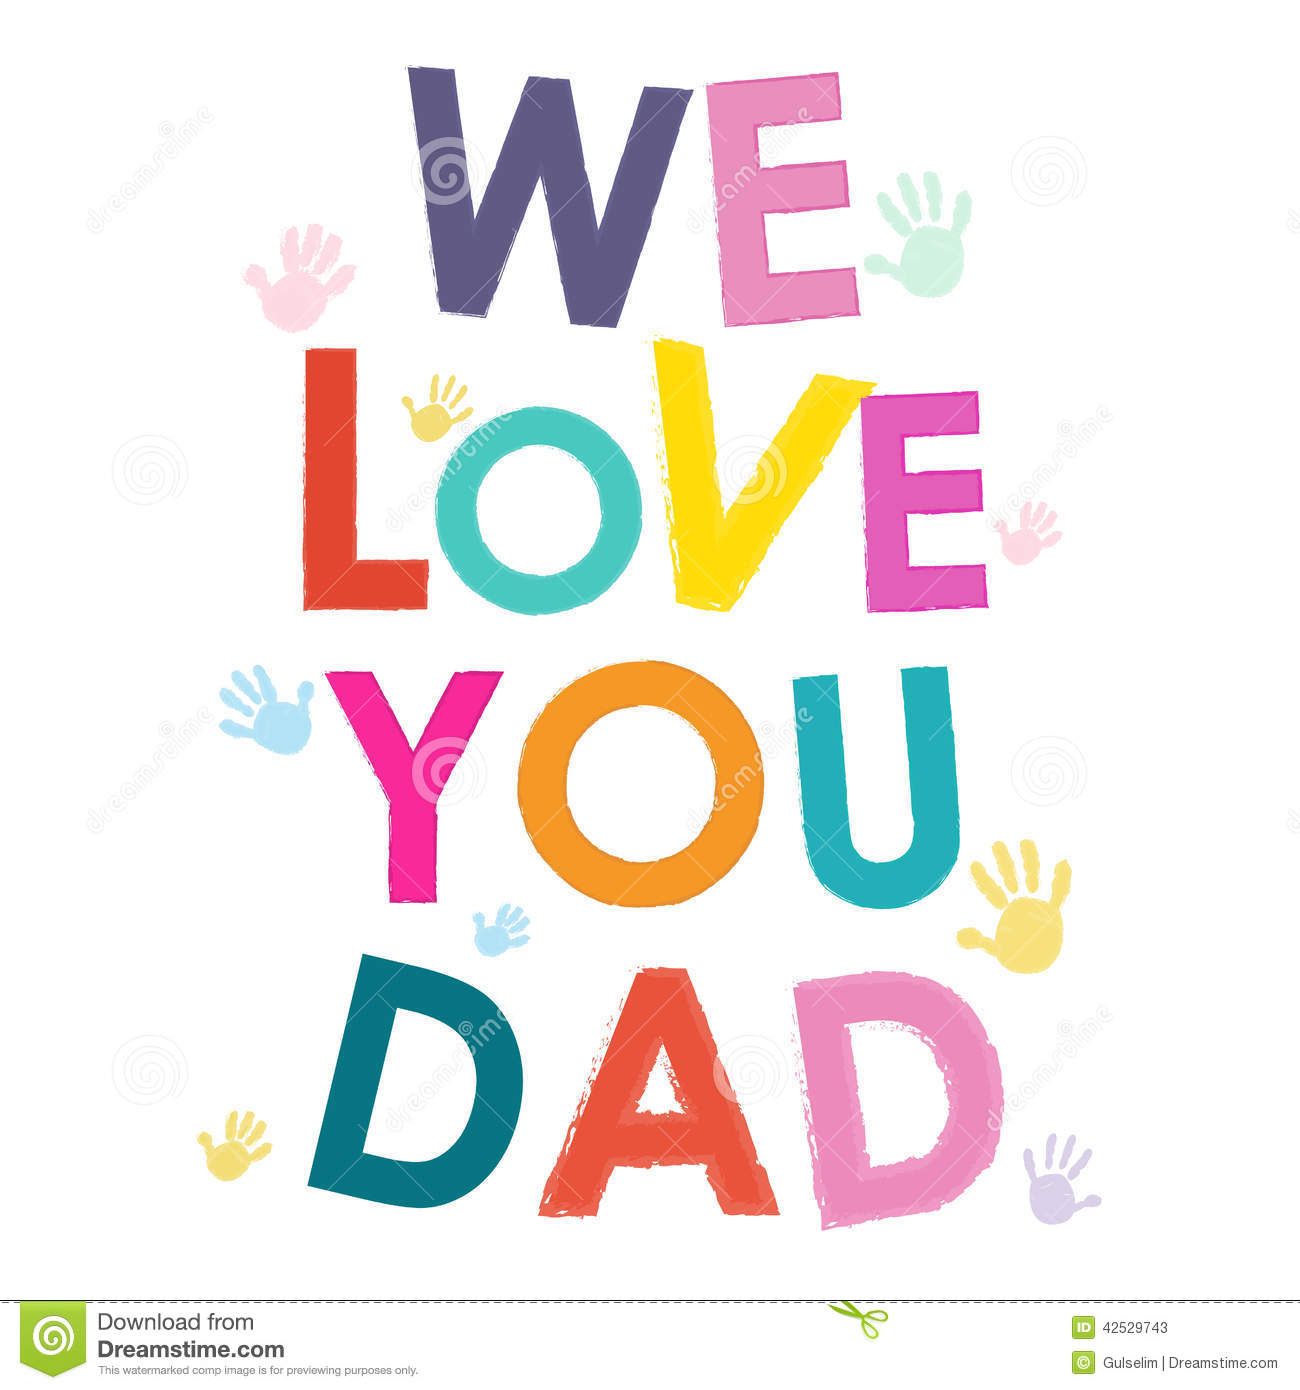 We Love You Dad Happy Fathers Day Card Illustration 42529743 Megapixl